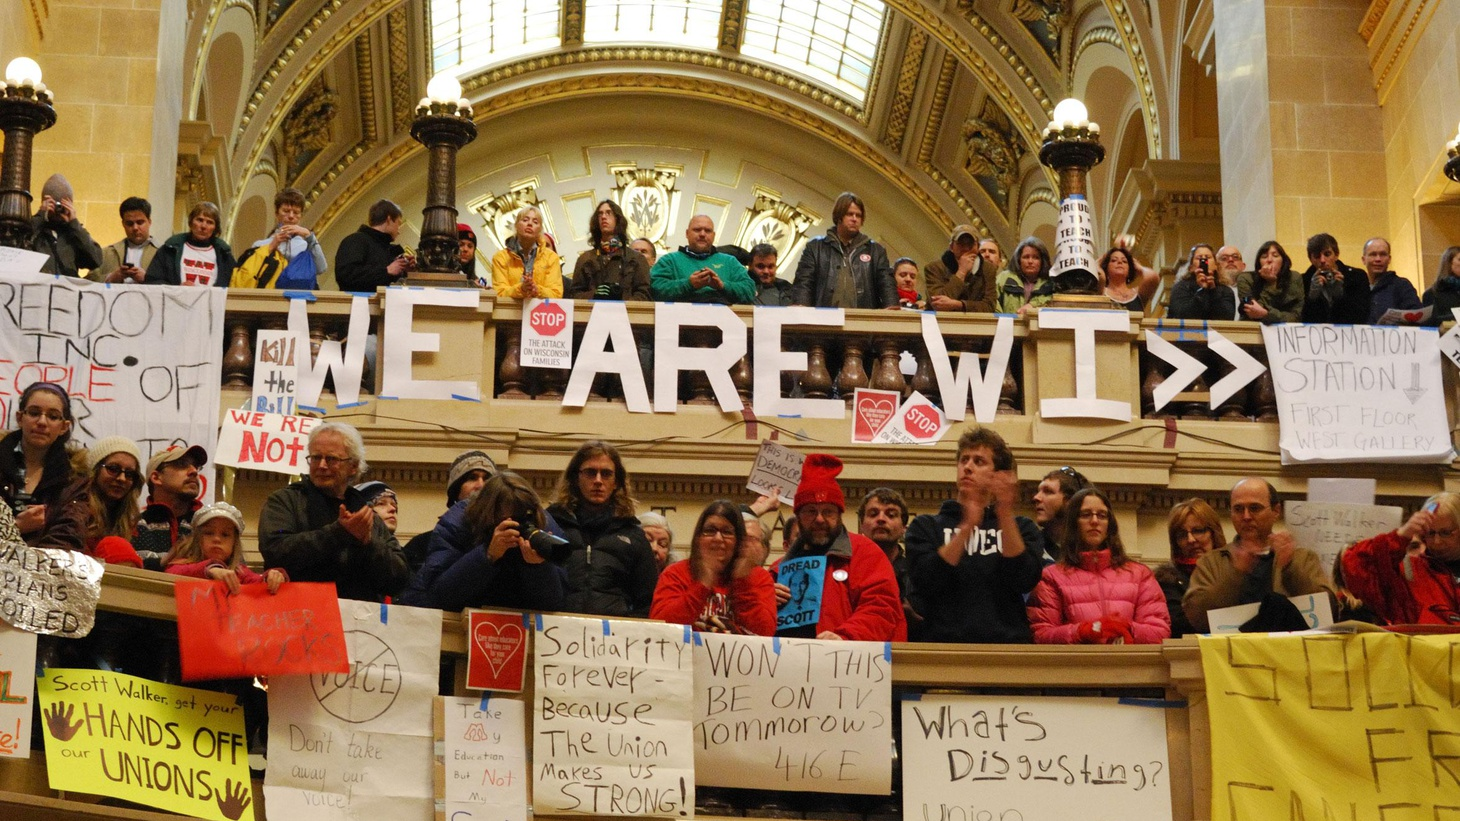 Wisconsin Governor Scott Walker led an anti-union movement that spread to Ohio and Indiana. Are California voters as resentful of organized labor as those in the Midwest?